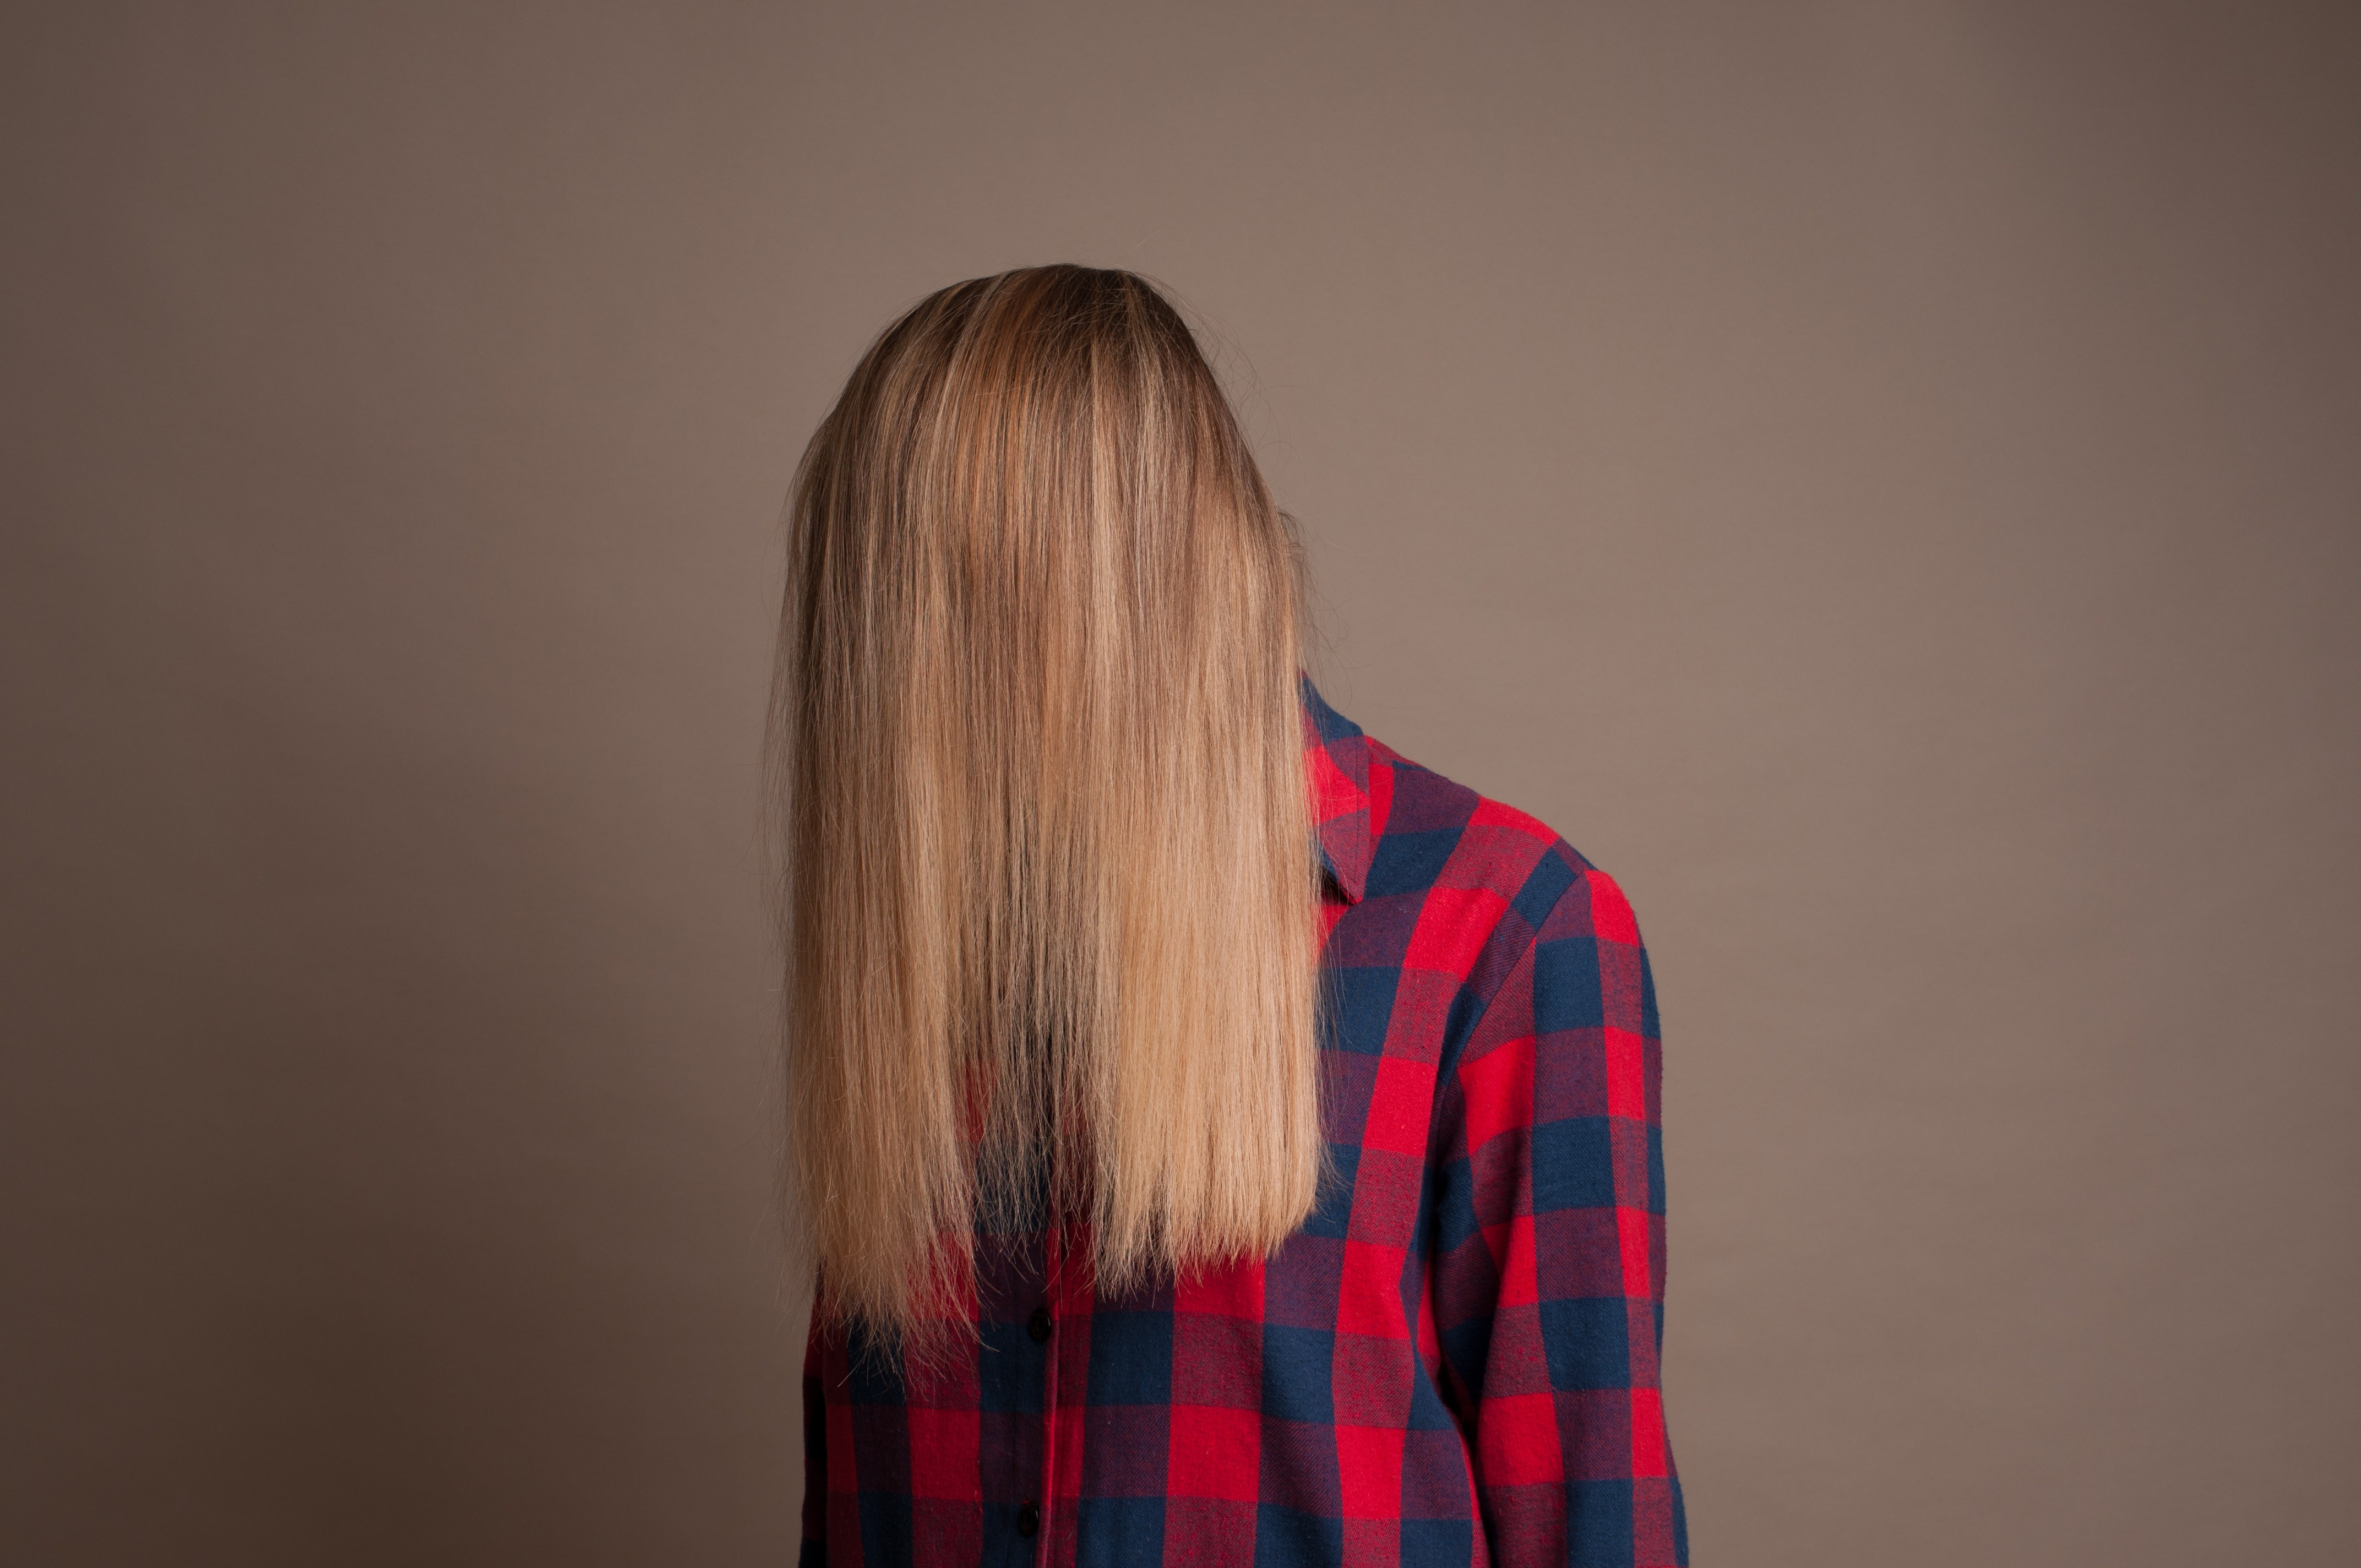 Person with straight blonde hair coverign their face